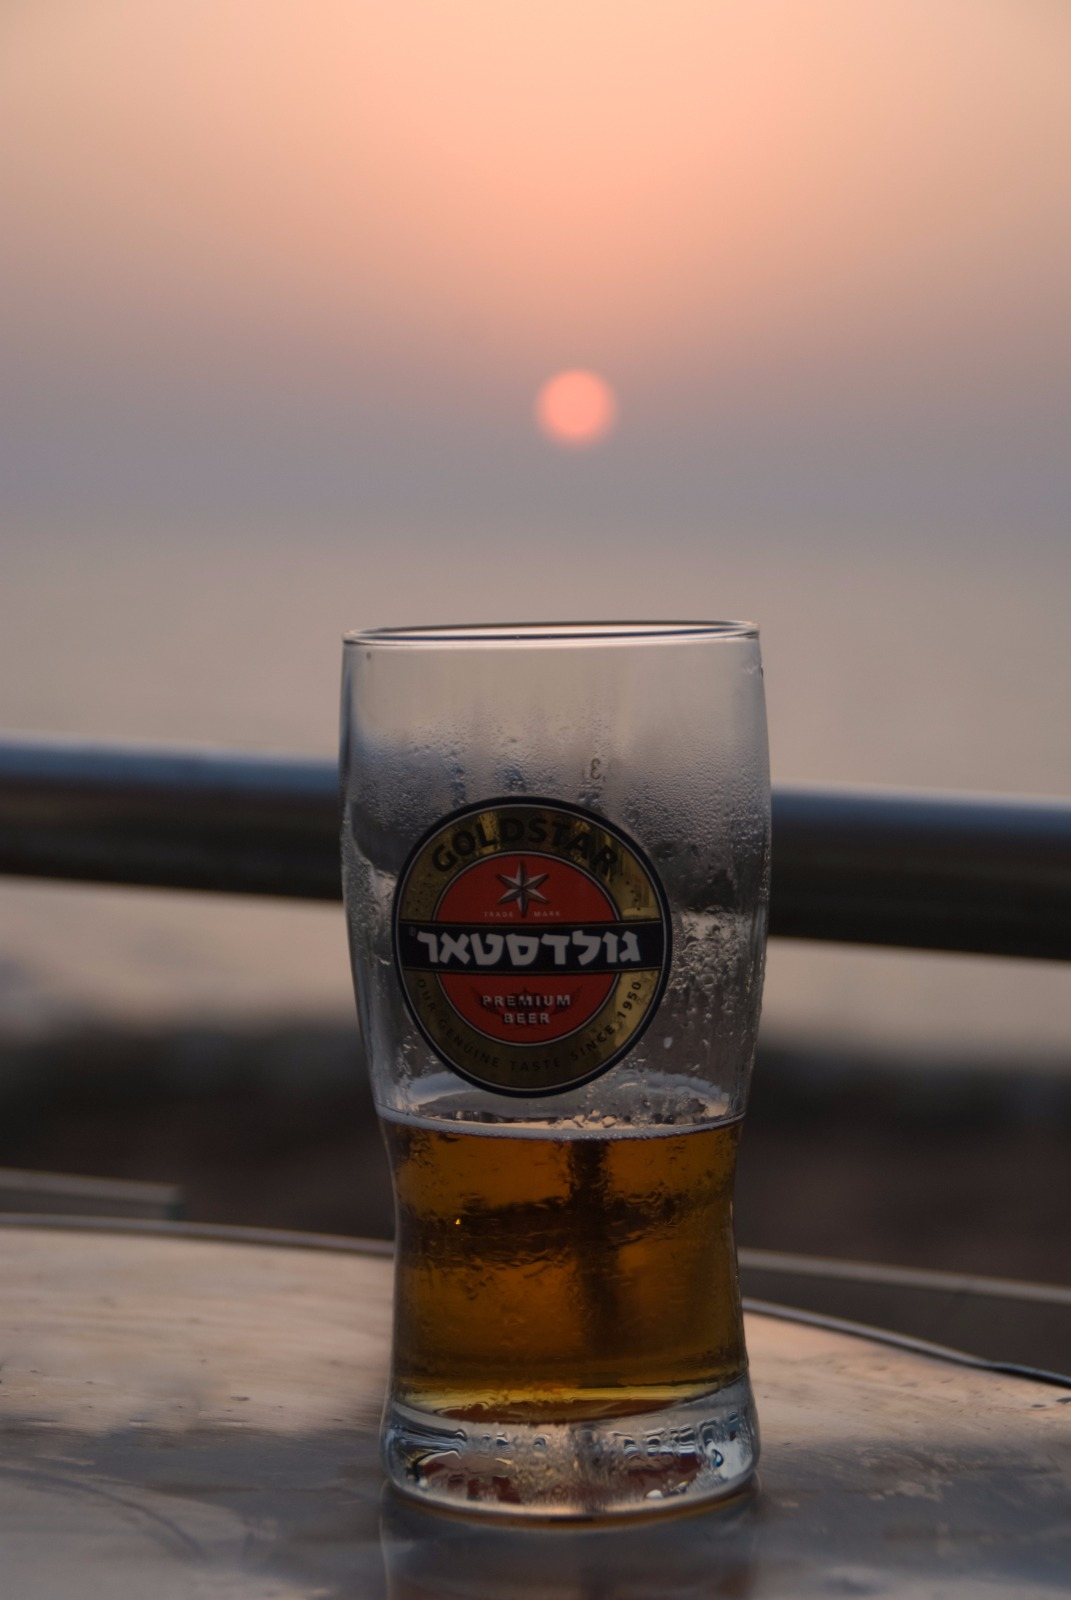 The old golden standard of Israeli beer - Goldstar, enjoyed at the Mediterranean sunset